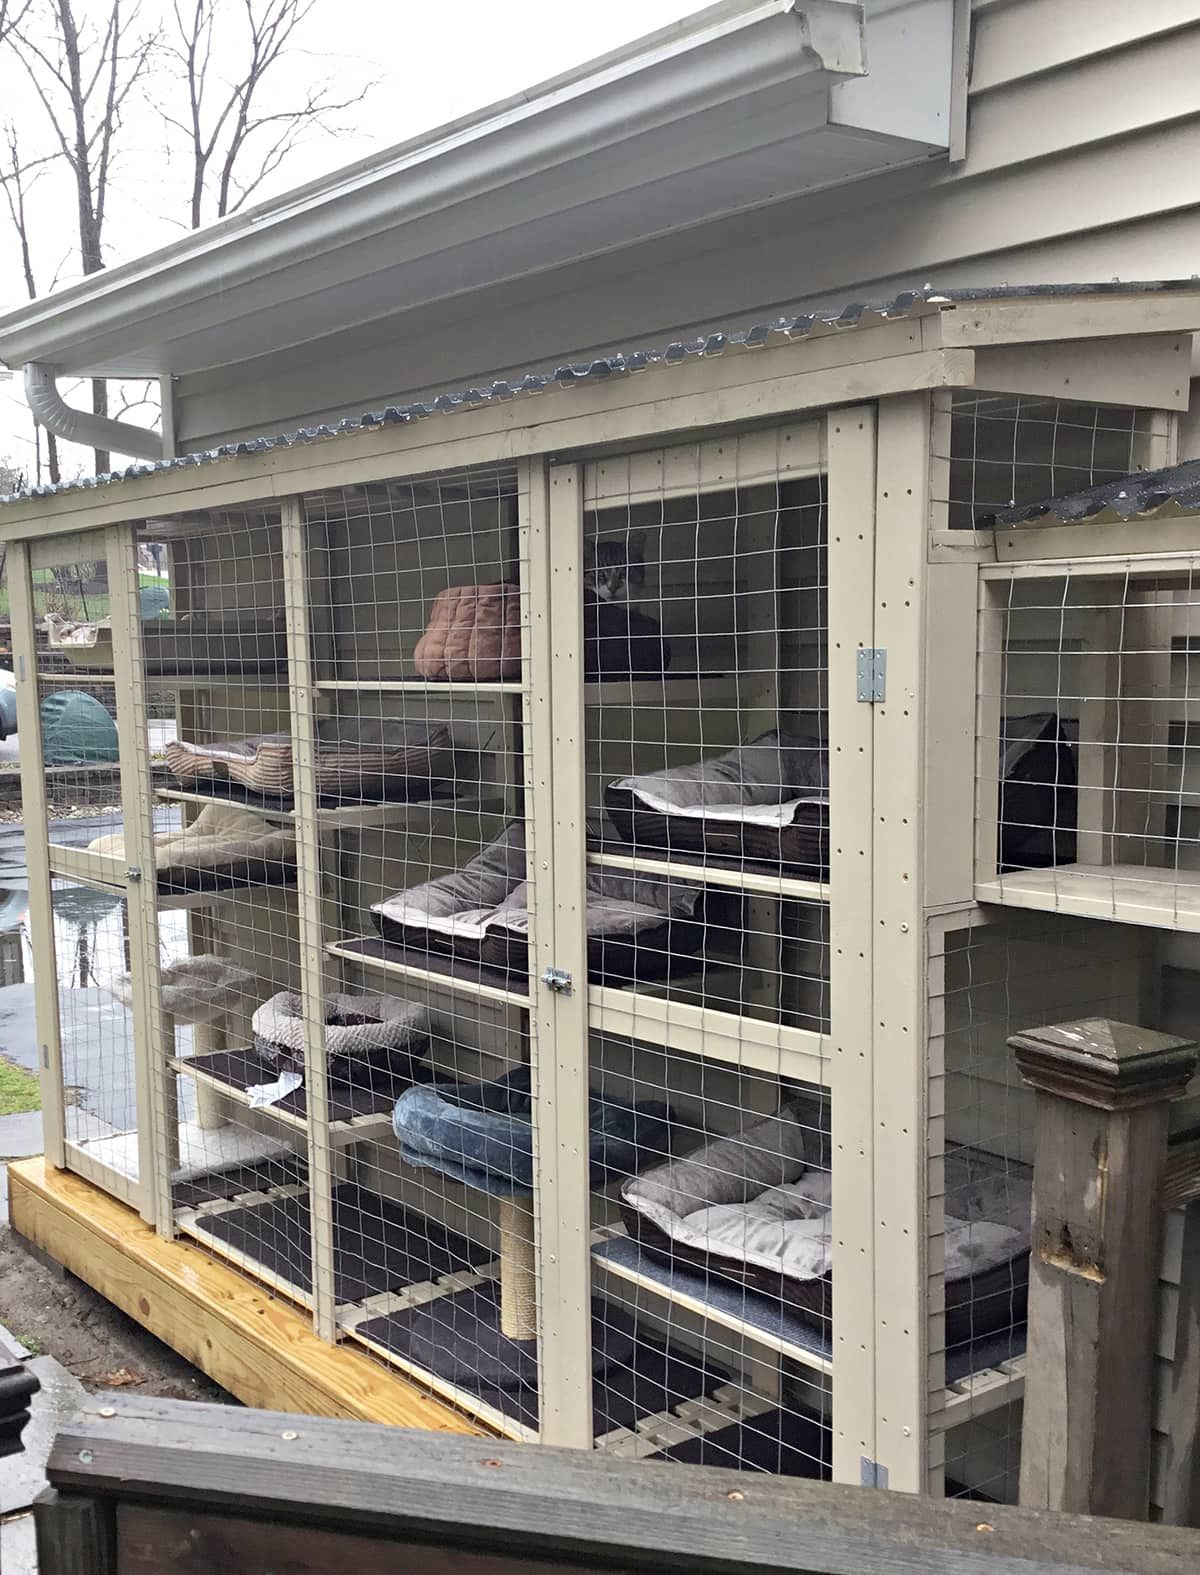 Outdoor Cat Cage Made From Wood Utility Shelving Cuckoo4design Cat Cages Outdoor Cat Cage Outdoor Cats